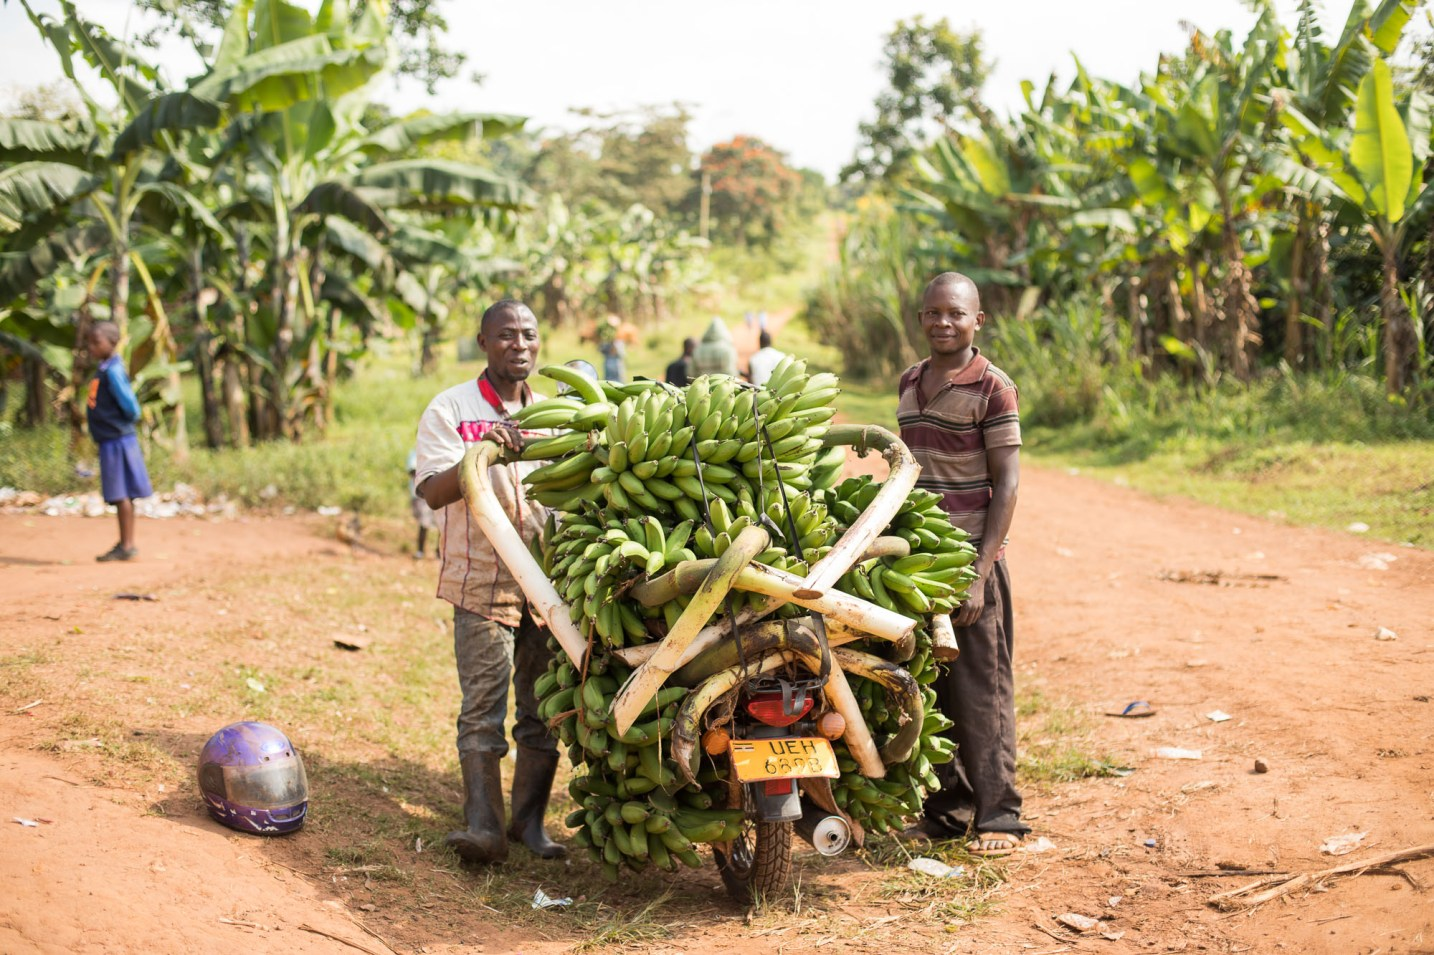 The East African highland banana is a starchy staple food in Mukono District, Uganda.